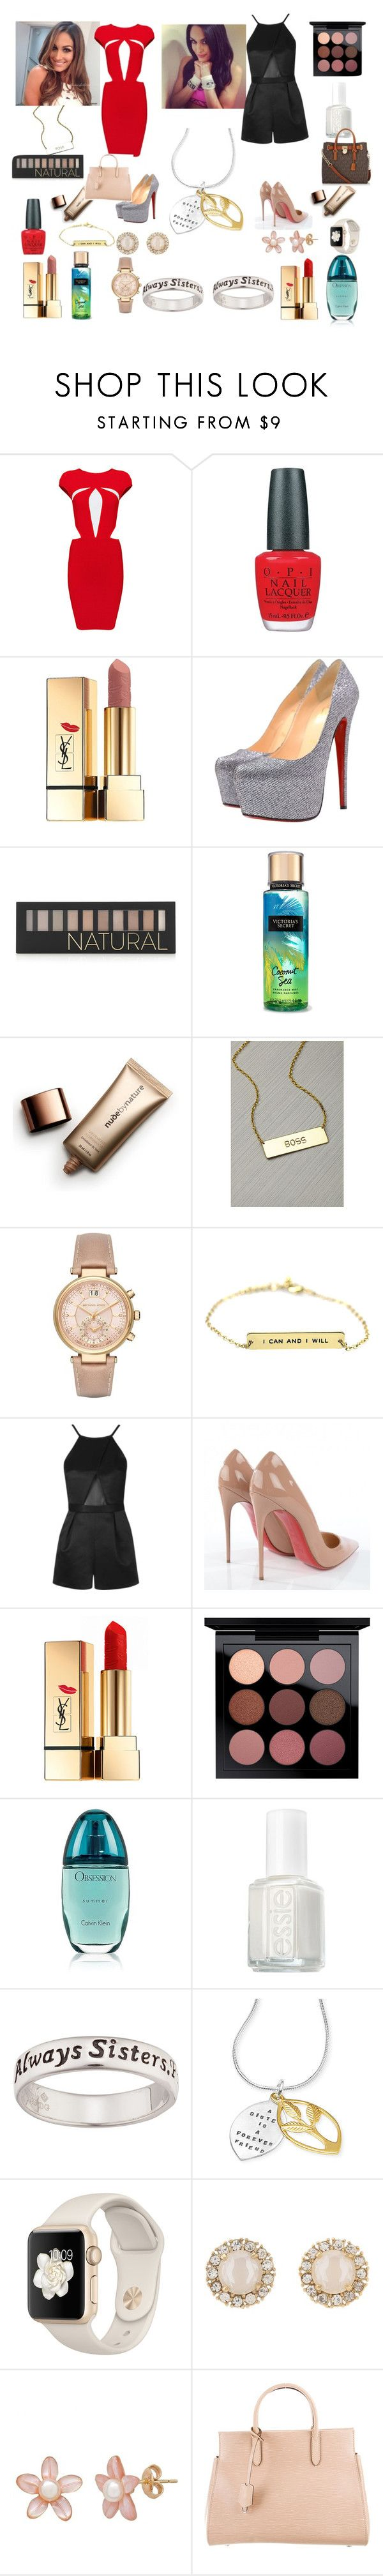 """Nikki and Brie Bella style"" by tytianabae ❤ liked on Polyvore featuring Posh Girl, OPI, Yves Saint Laurent, Christian Louboutin, Forever 21, Nude by Nature, Michael Kors, Topshop, MAC Cosmetics and Calvin Klein"